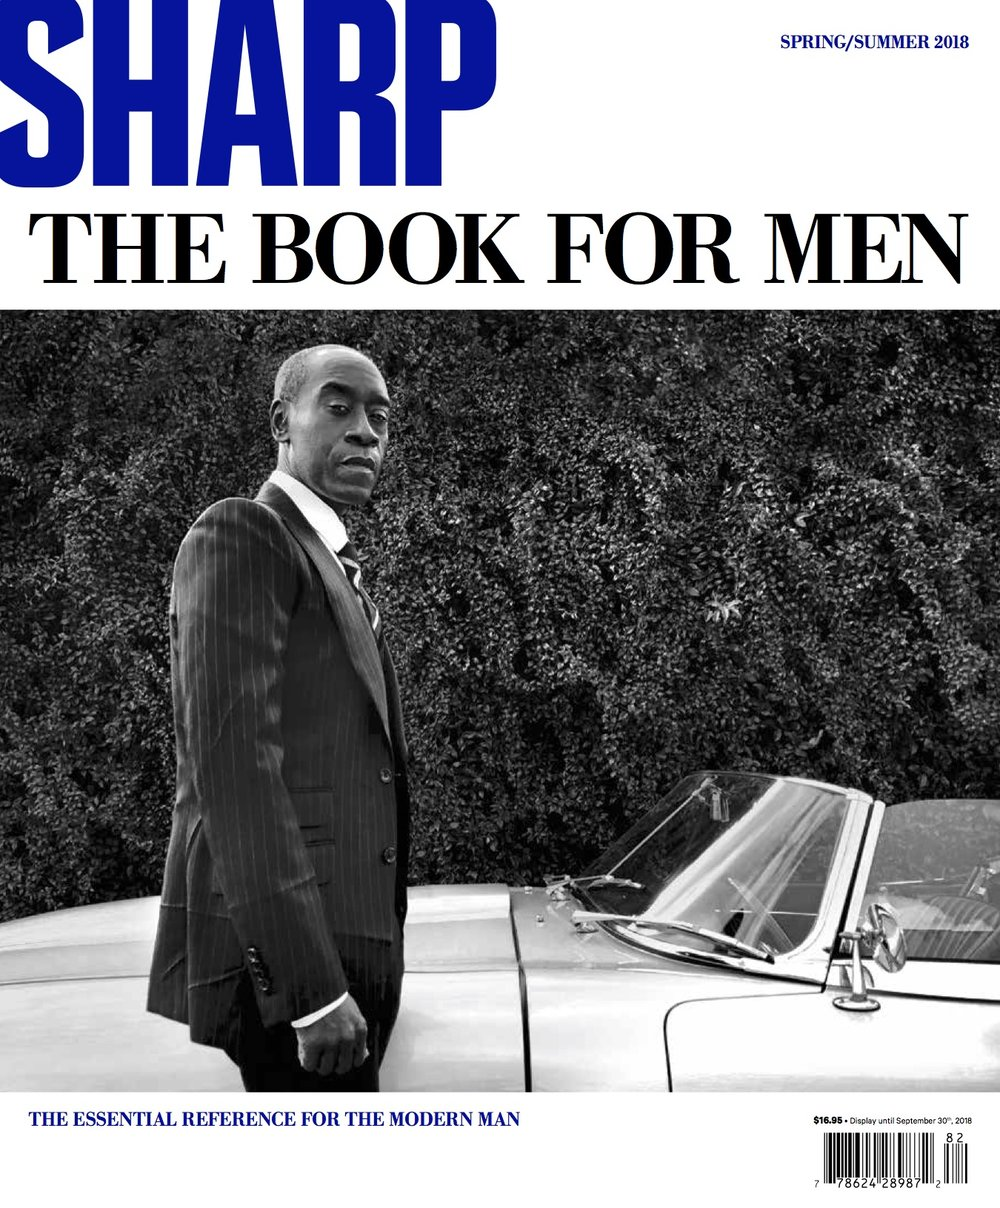 SharpBFMSpring18Cover.jpg